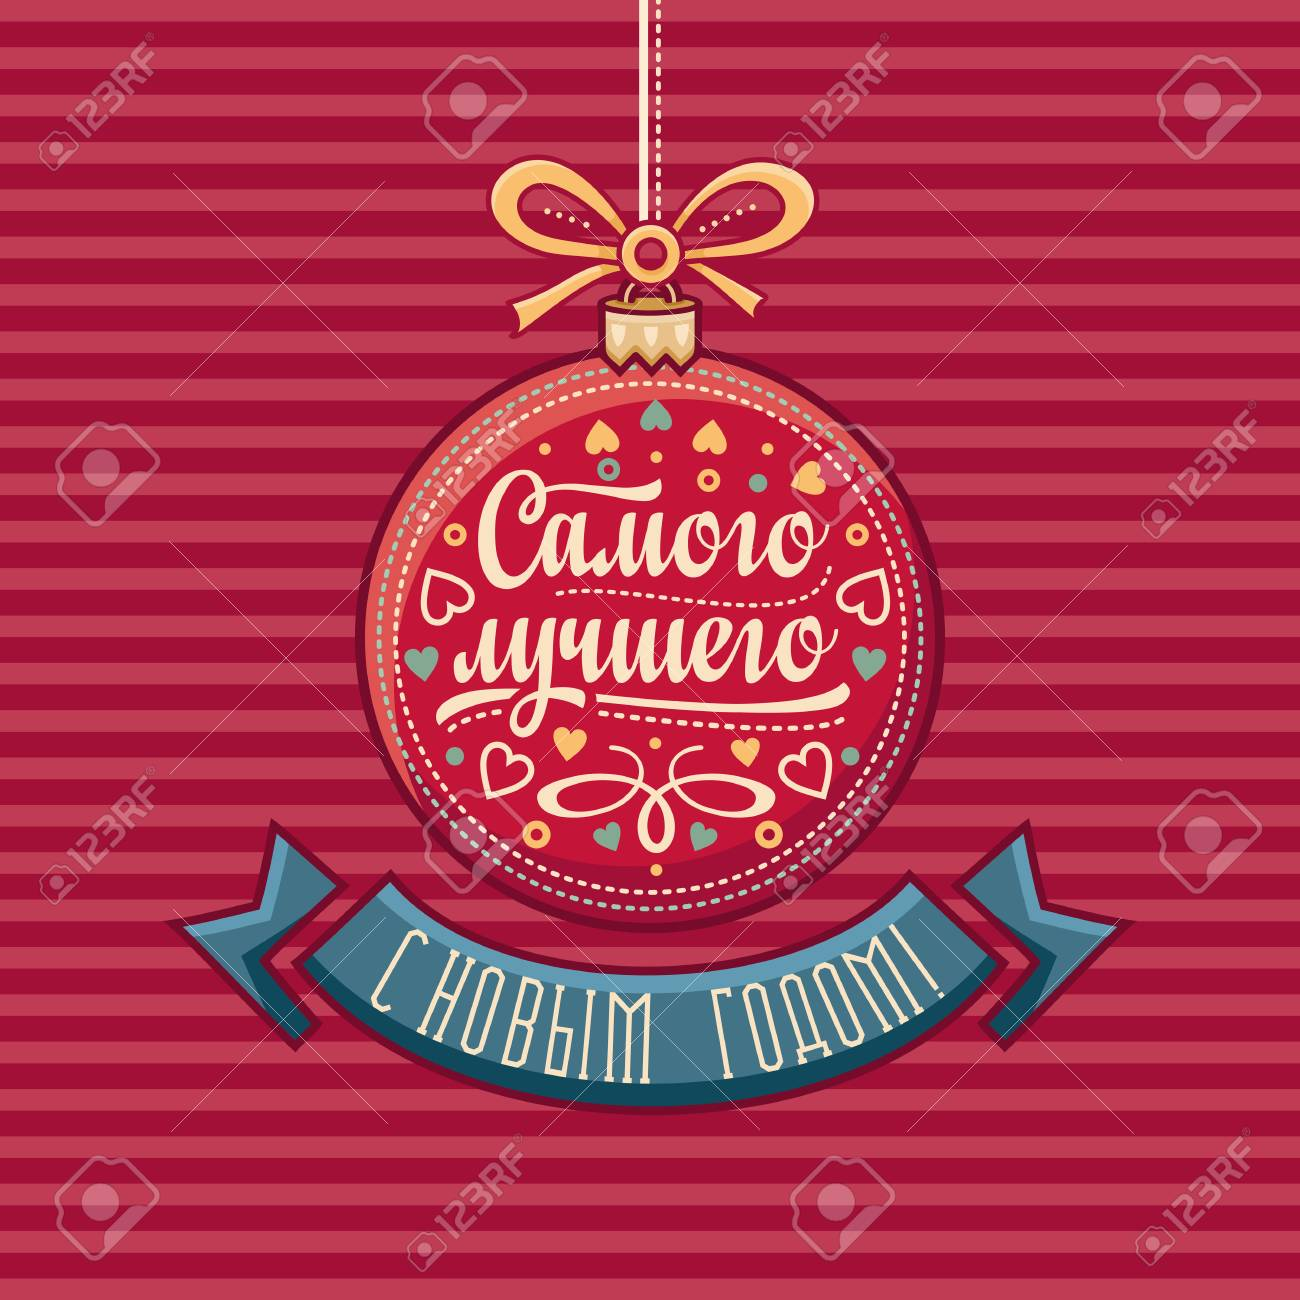 New year card holiday colorful decor lettering composition new year card holiday colorful decor lettering composition with phrase in russian language kristyandbryce Choice Image